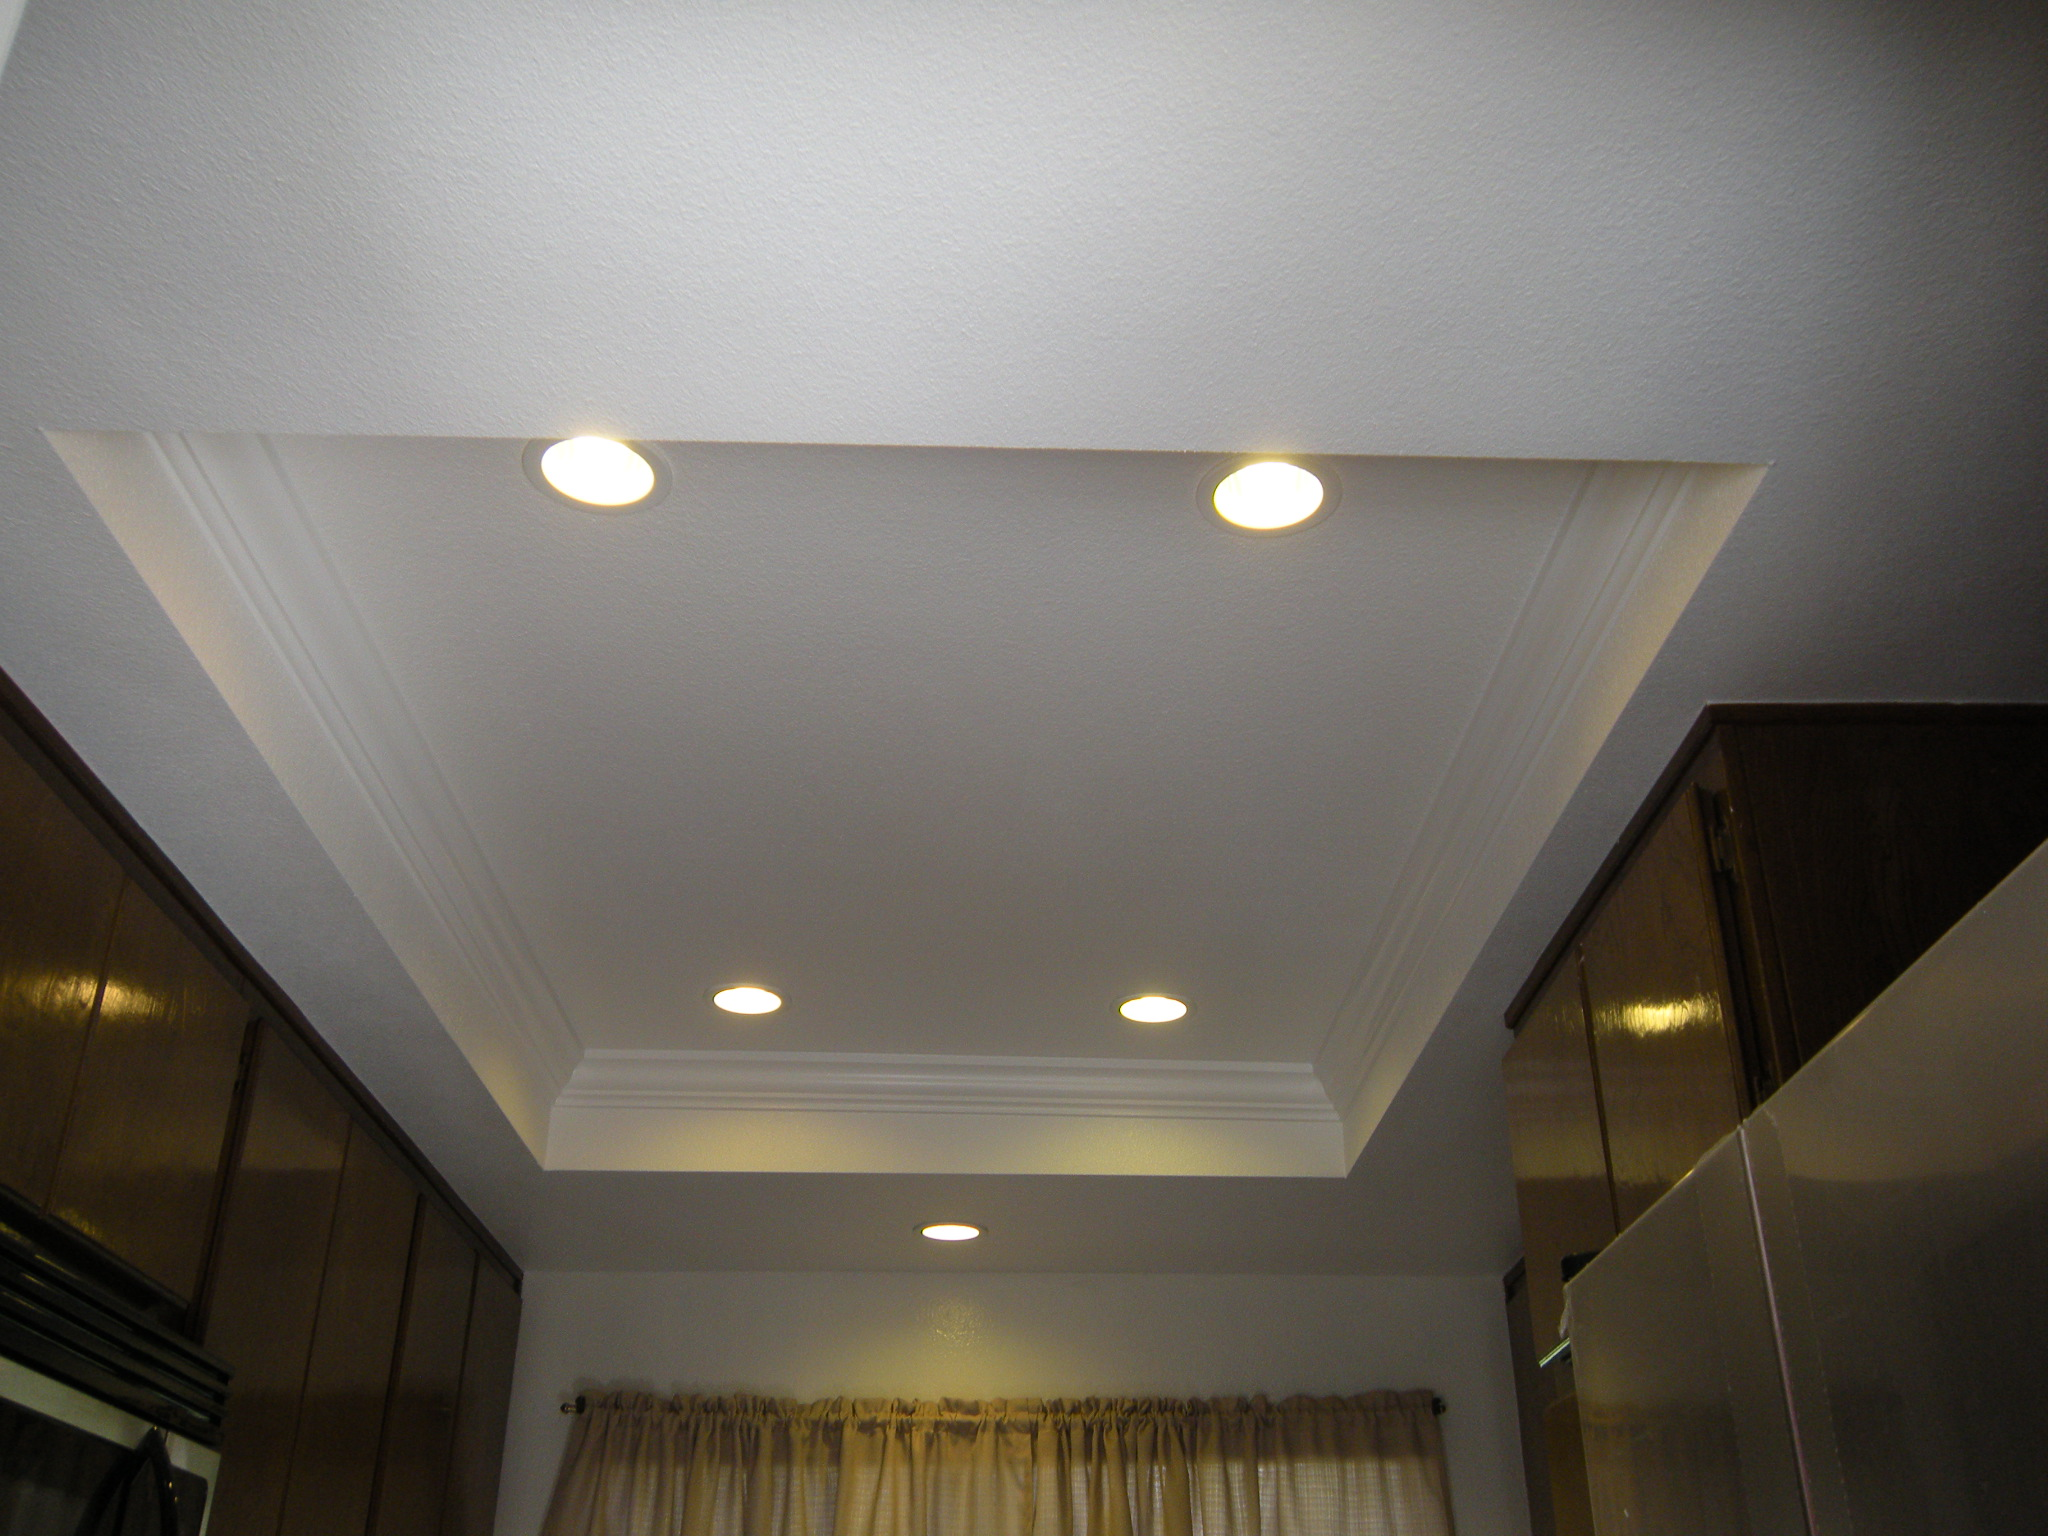 1o reasons to install Ceiling recessed lights | Warisan Lighting